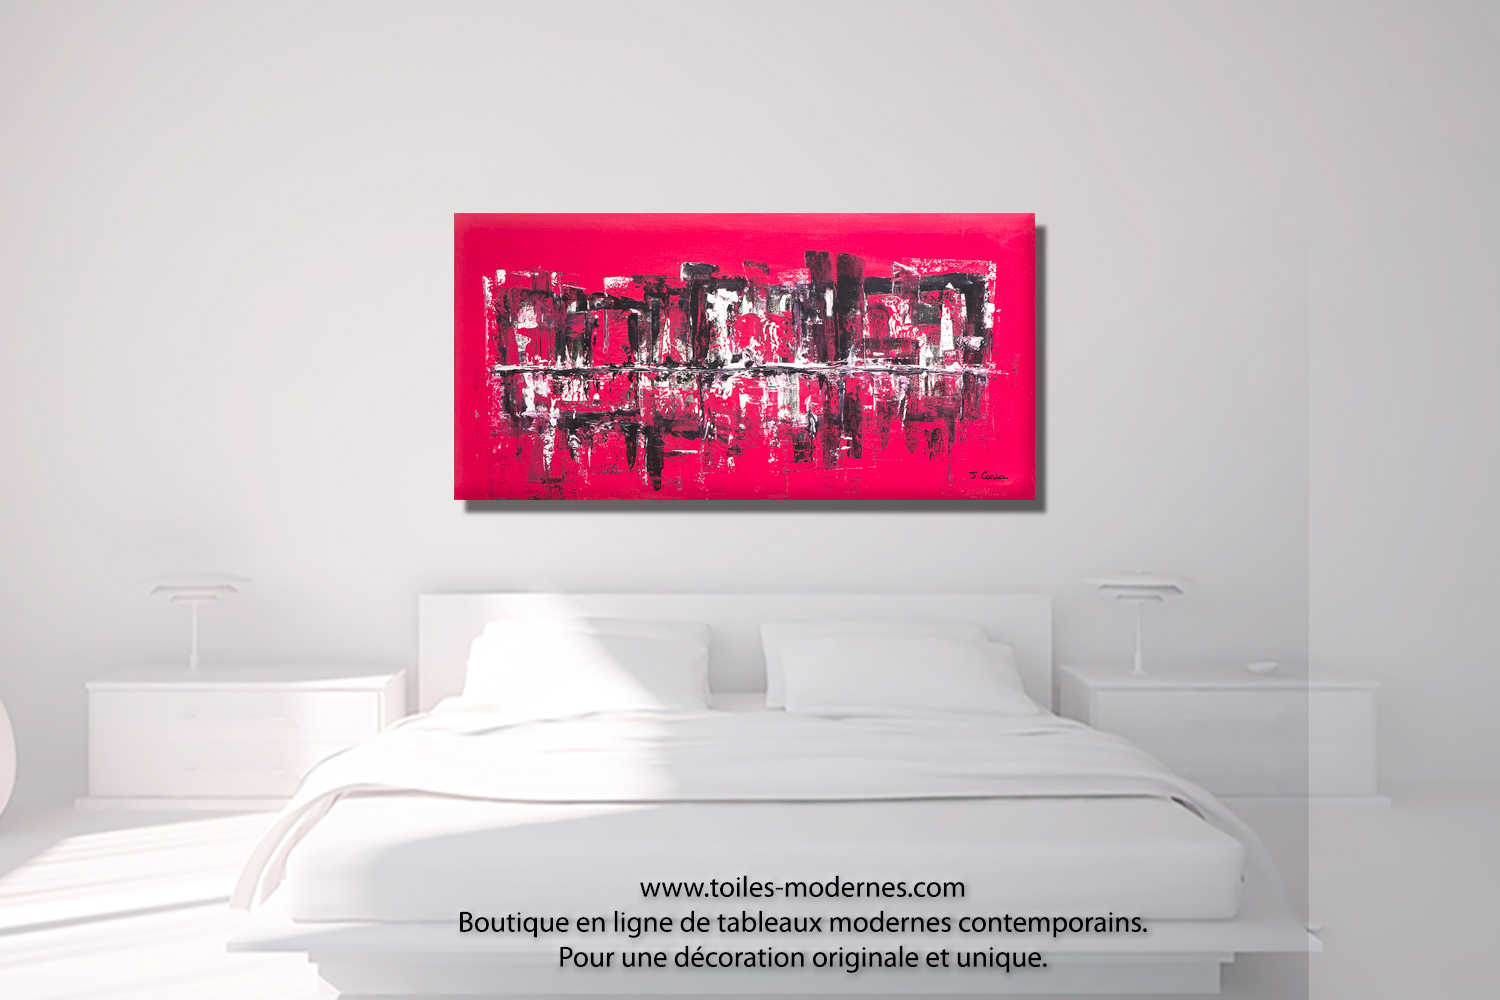 Grand Panoramique Moderne Rouge Framboise Tableau Ville Abstraite D Coration Luxueuse Tendance